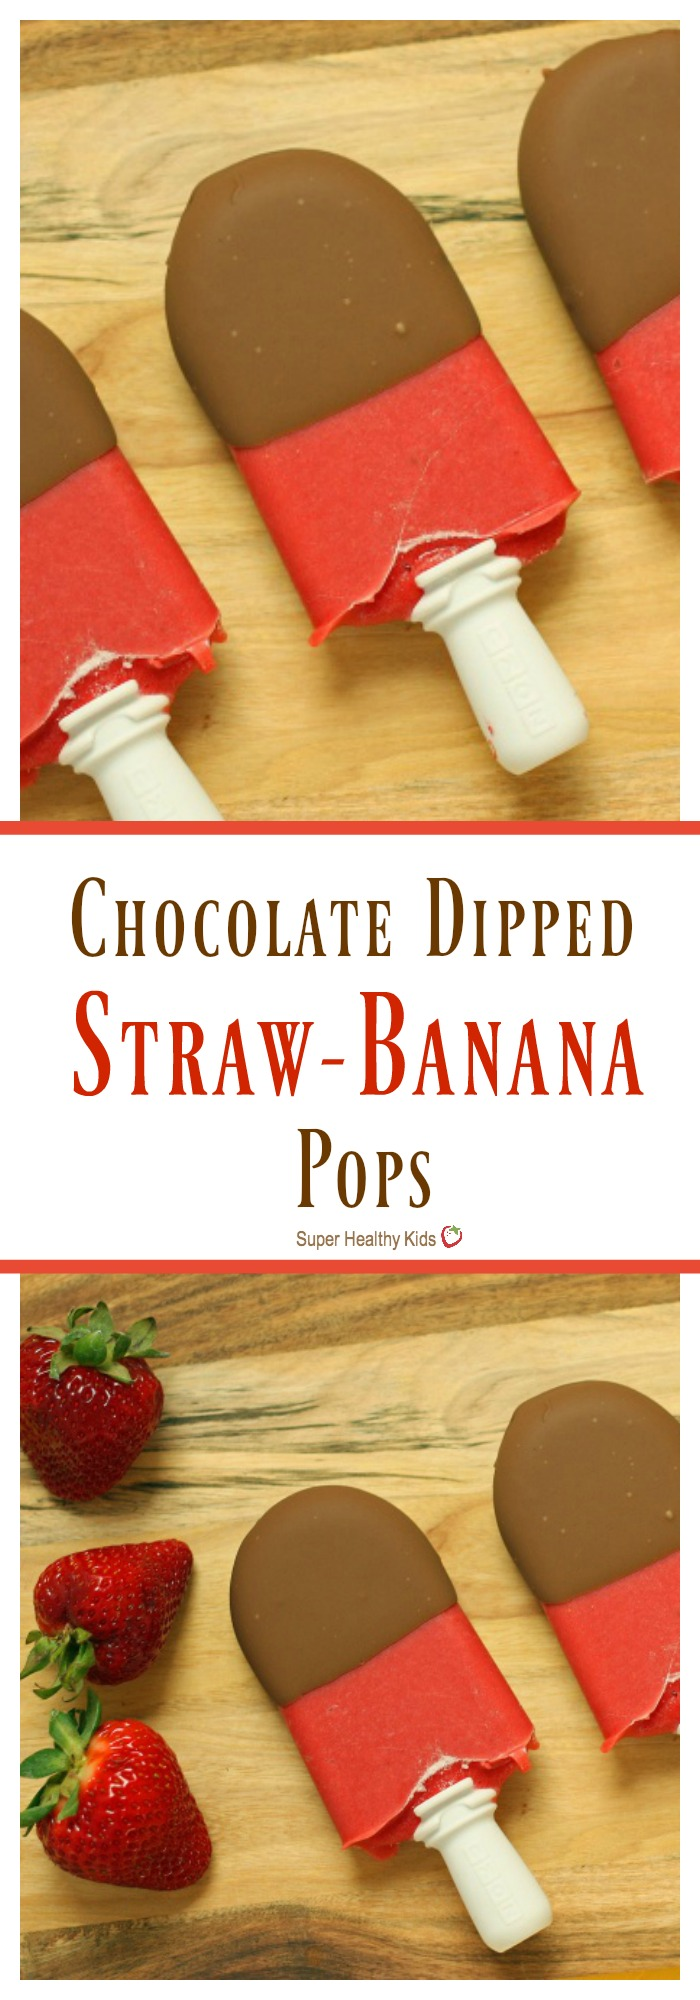 FOOD - Chocolate Dipped Straw-Banana Pops. A healthy treat to hit that sweet spot! http://www.superhealthykids.com/chocolate-dipped-straw-banana-pops/